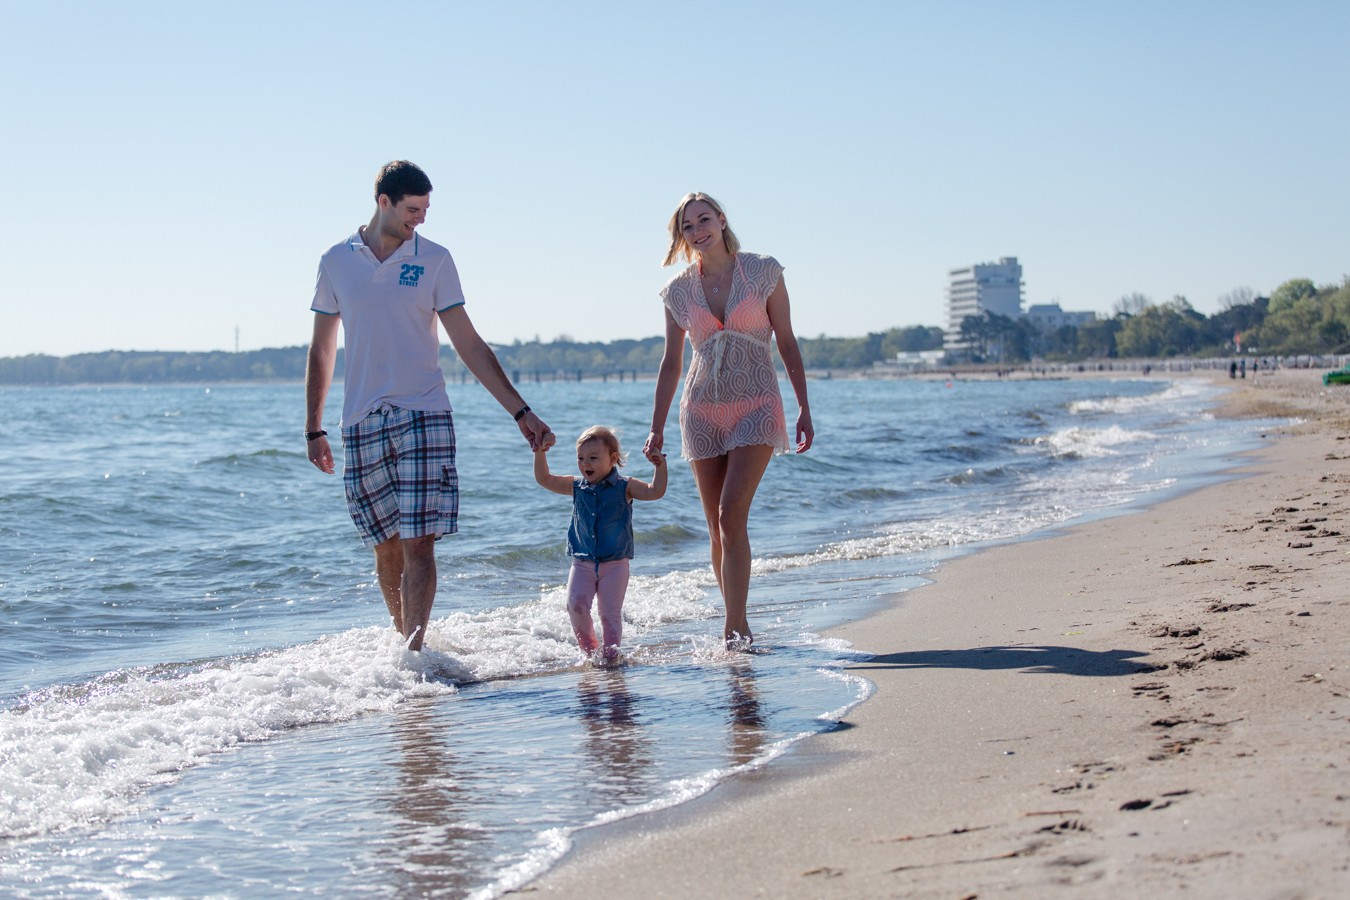 Familienshooting am Strand in Timmendorf